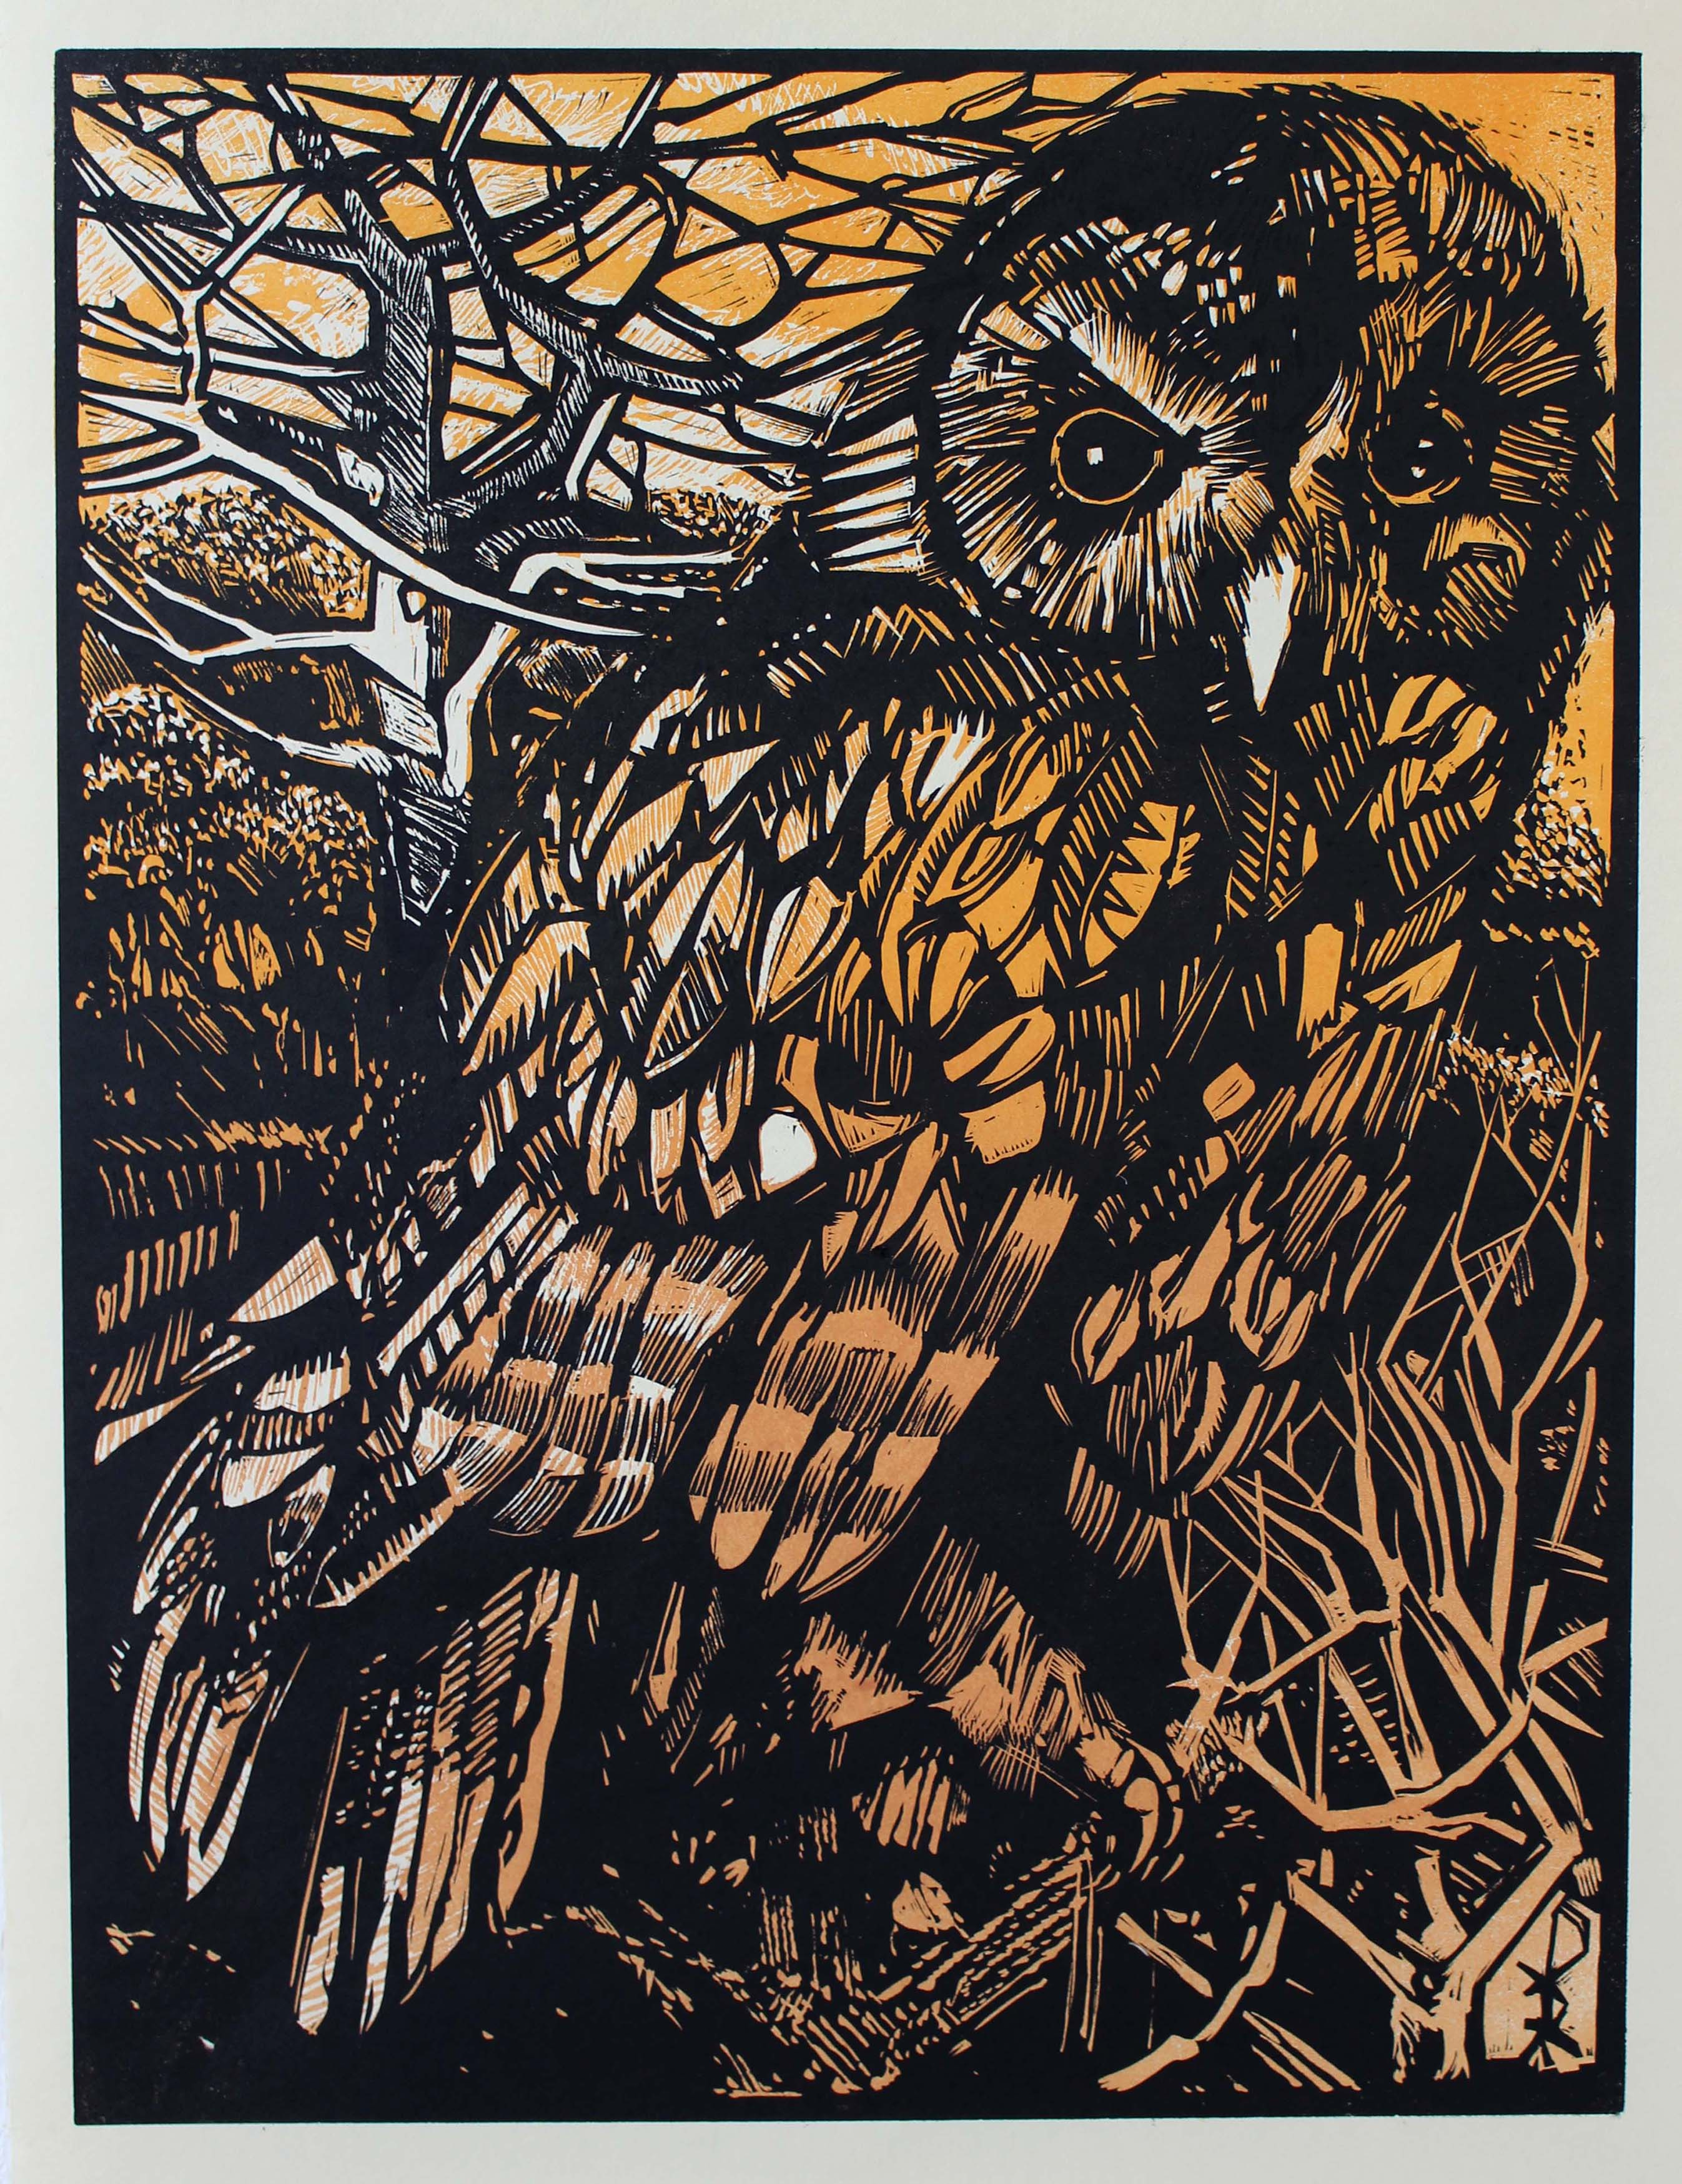 'Stonegate Owl' Ian Burke Woodblock and Etched Lino Print, 2019